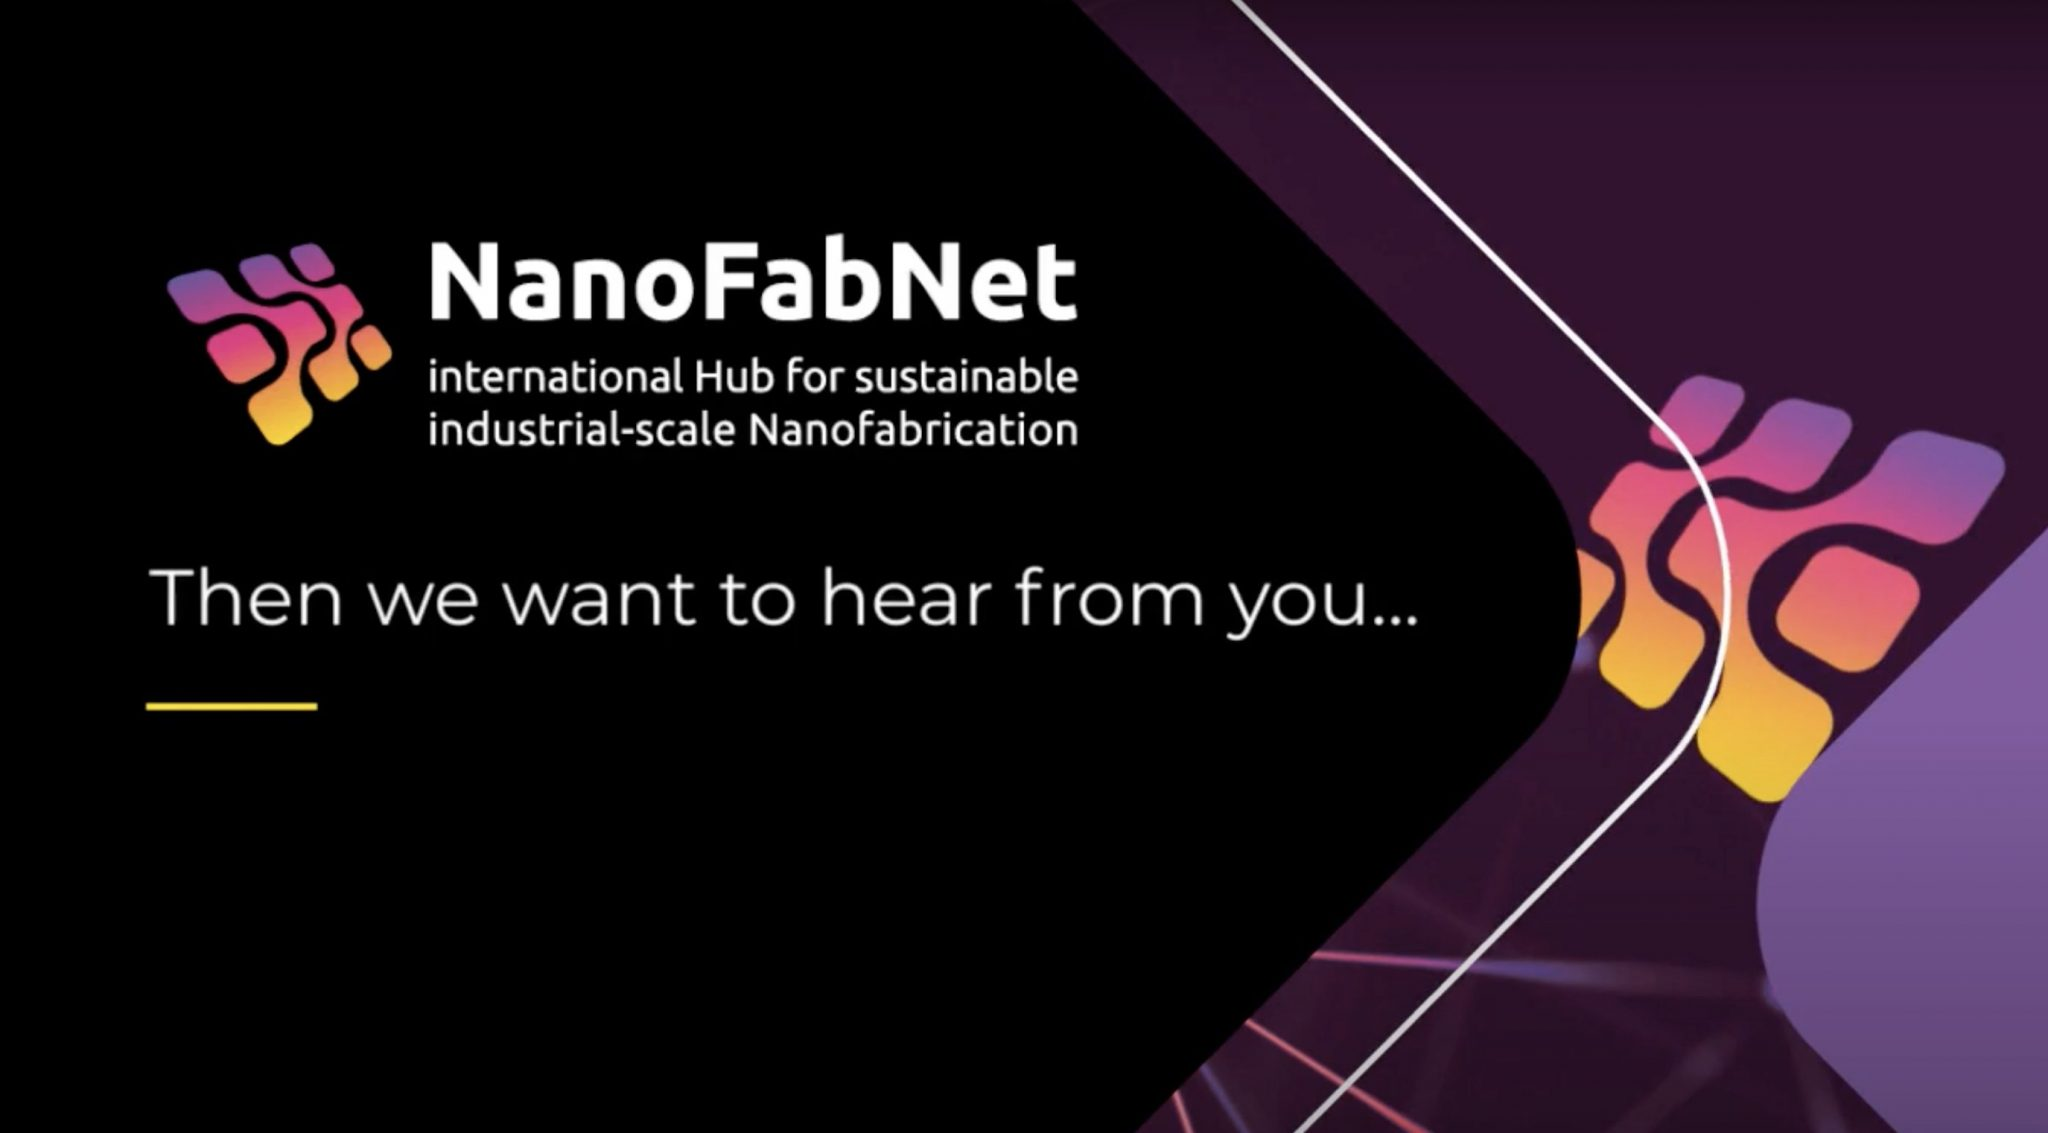 Answer the two surveys of NanoFabNet Hub about sustainable nanofabrication.